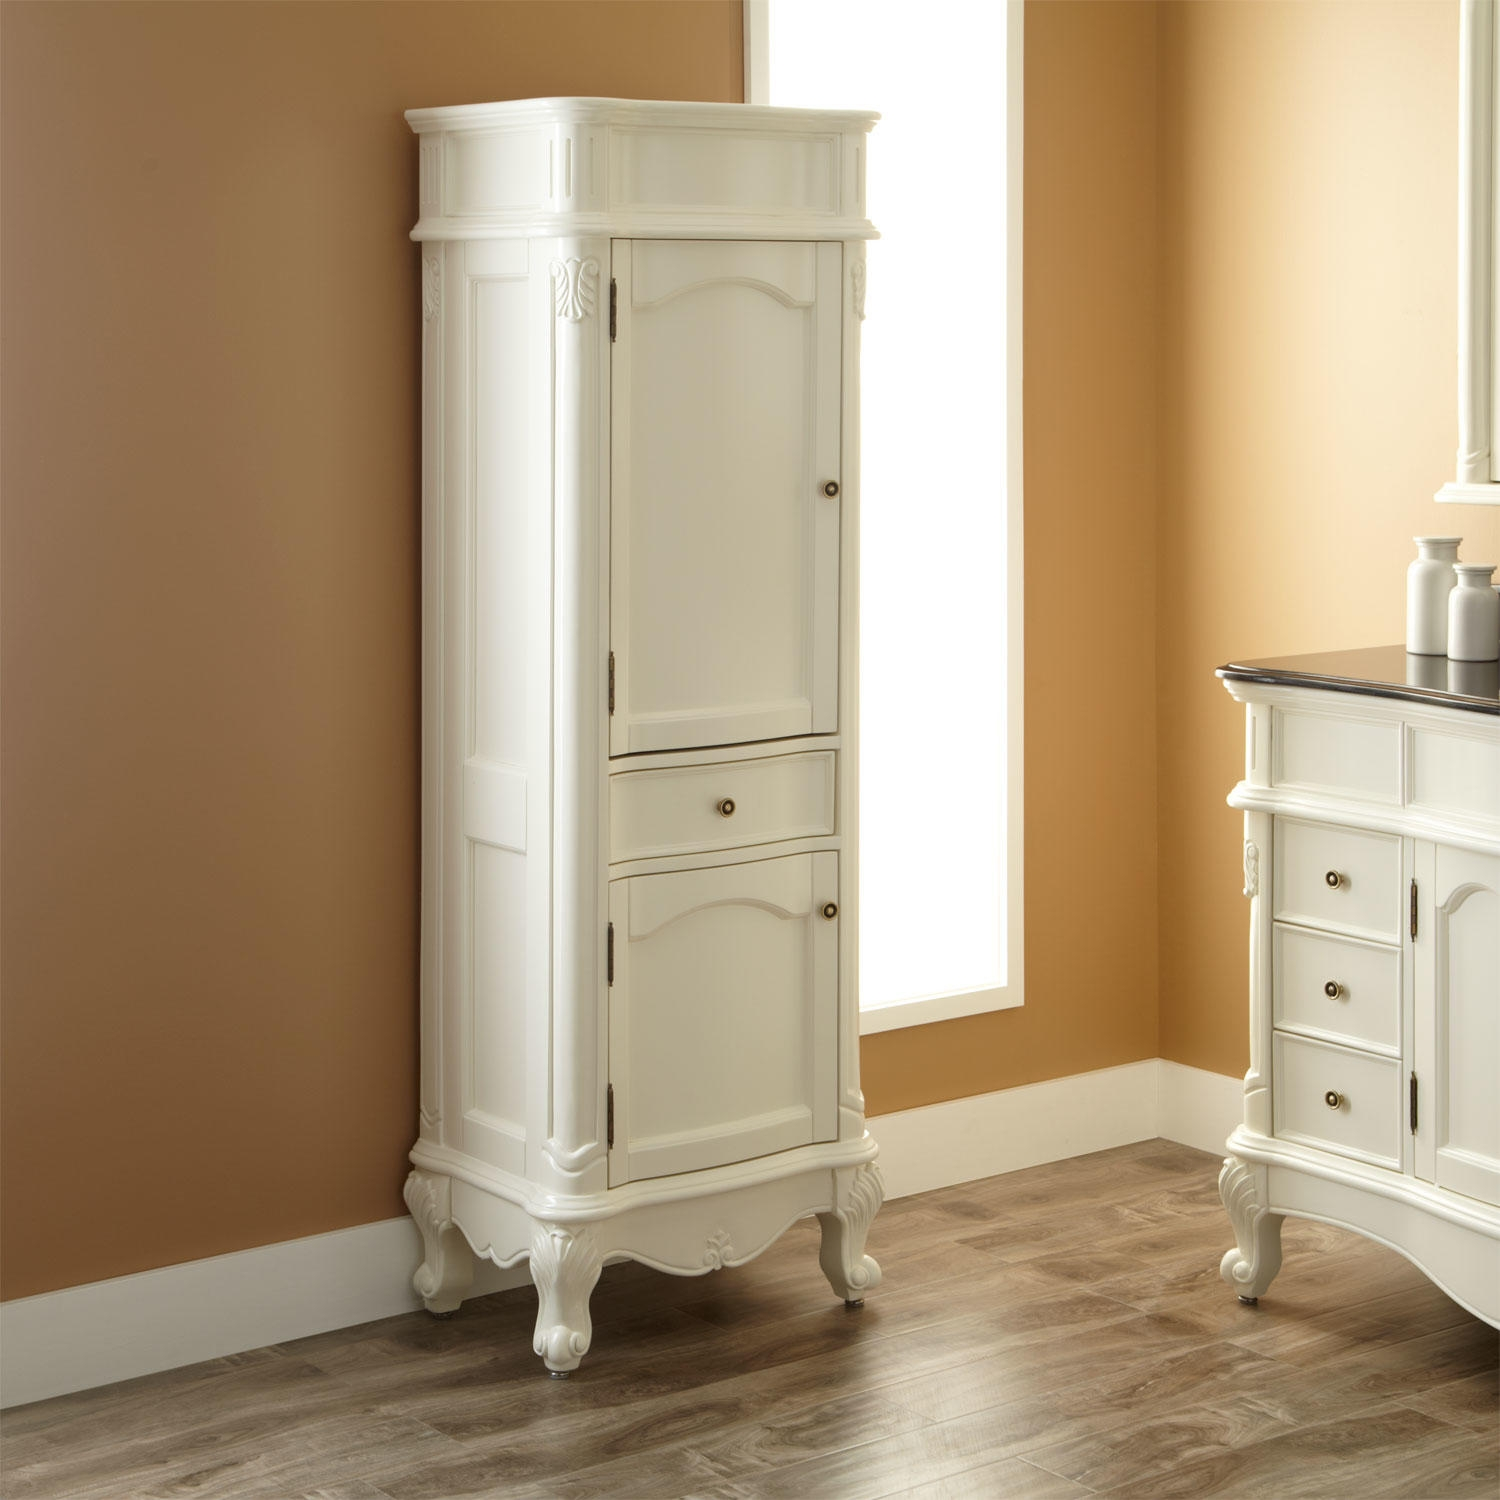 Permalink to Bathroom Cabinets Cupboards And Storage Units